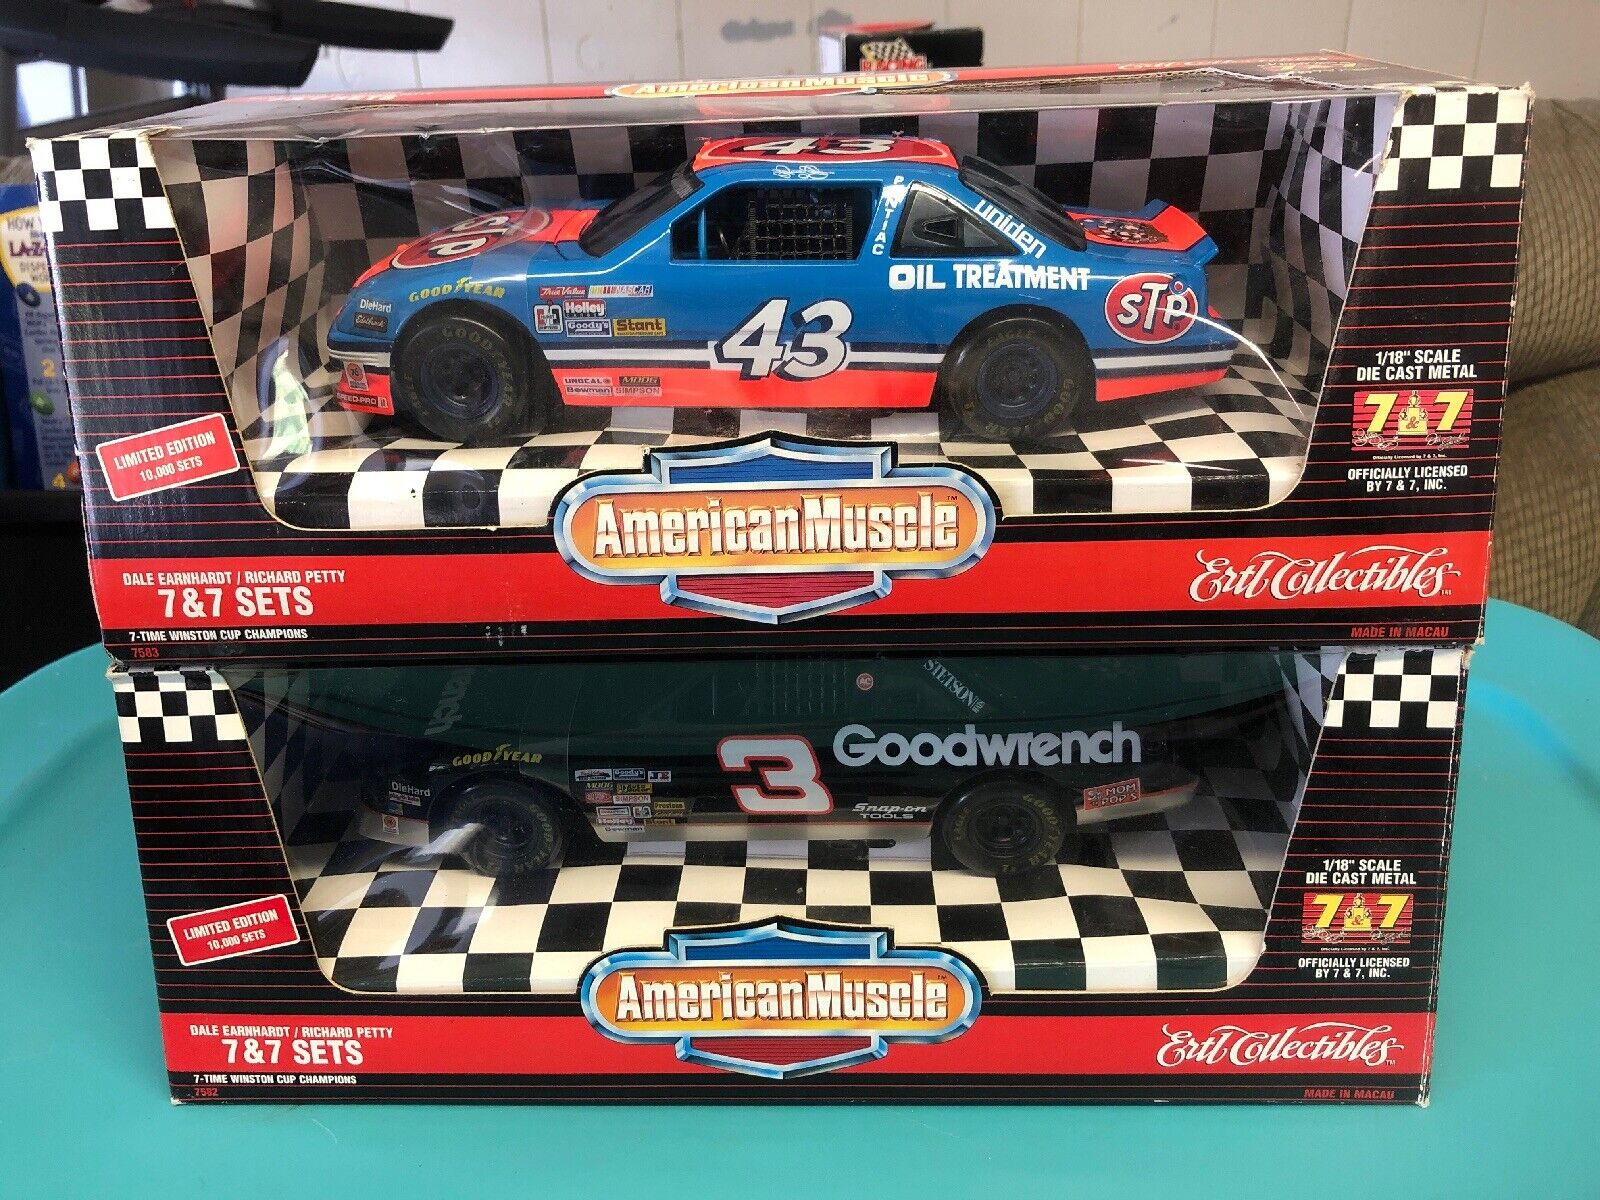 Dale Earnhardt Richard Petty  7&7 American Muscle Diecast voiture Set 1 18 Scale Ertl  bon prix